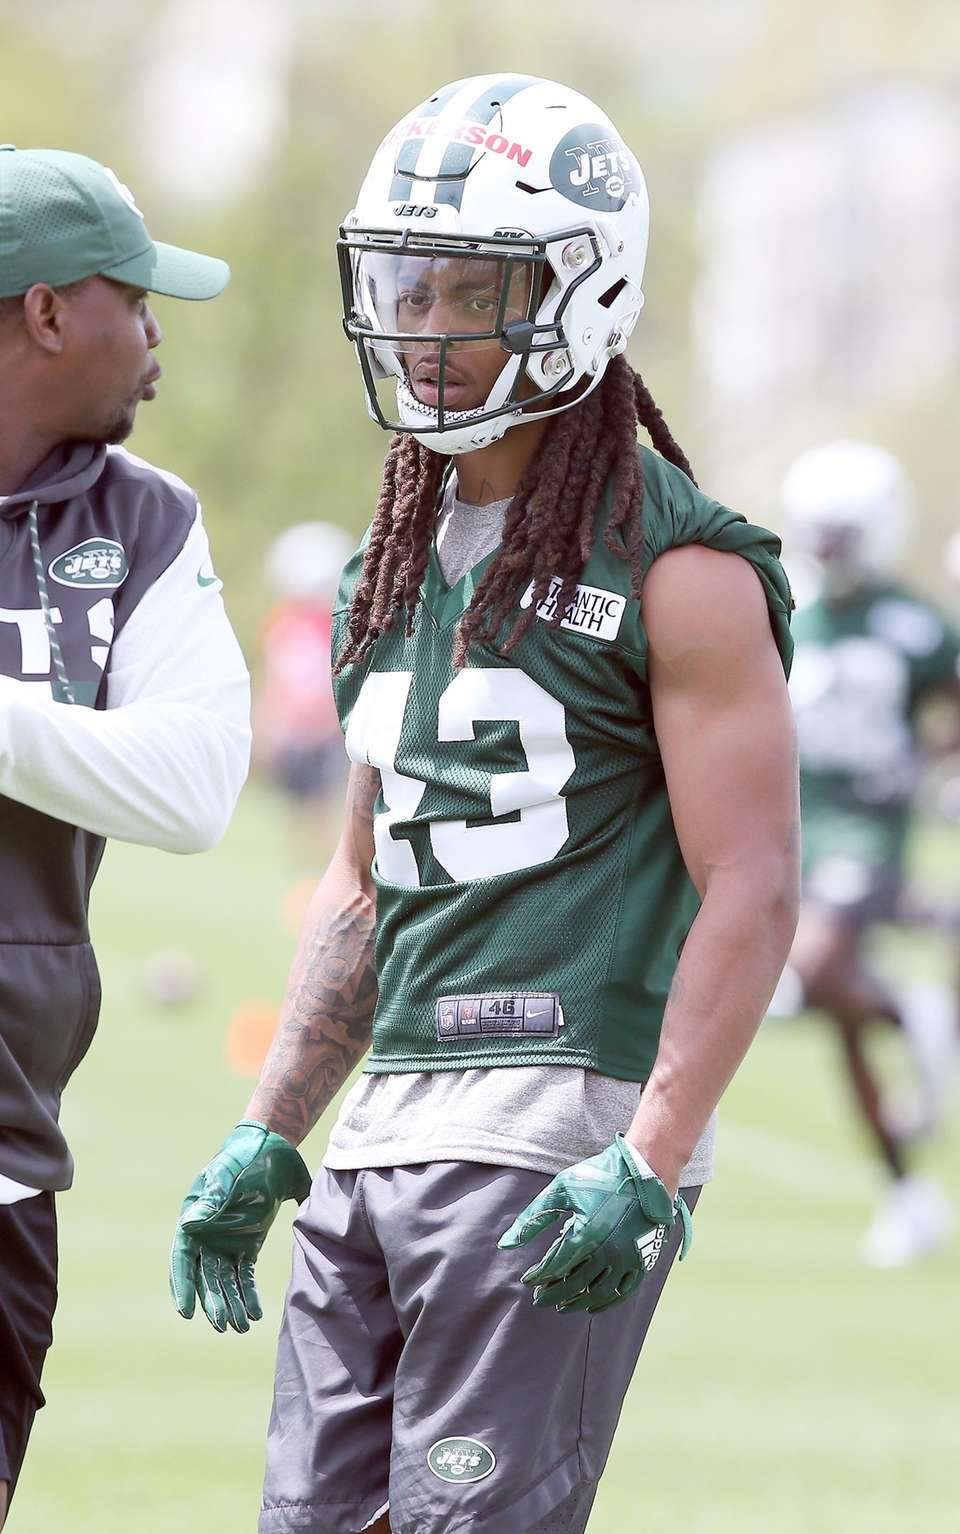 Parry Nickerson on the practice field during the